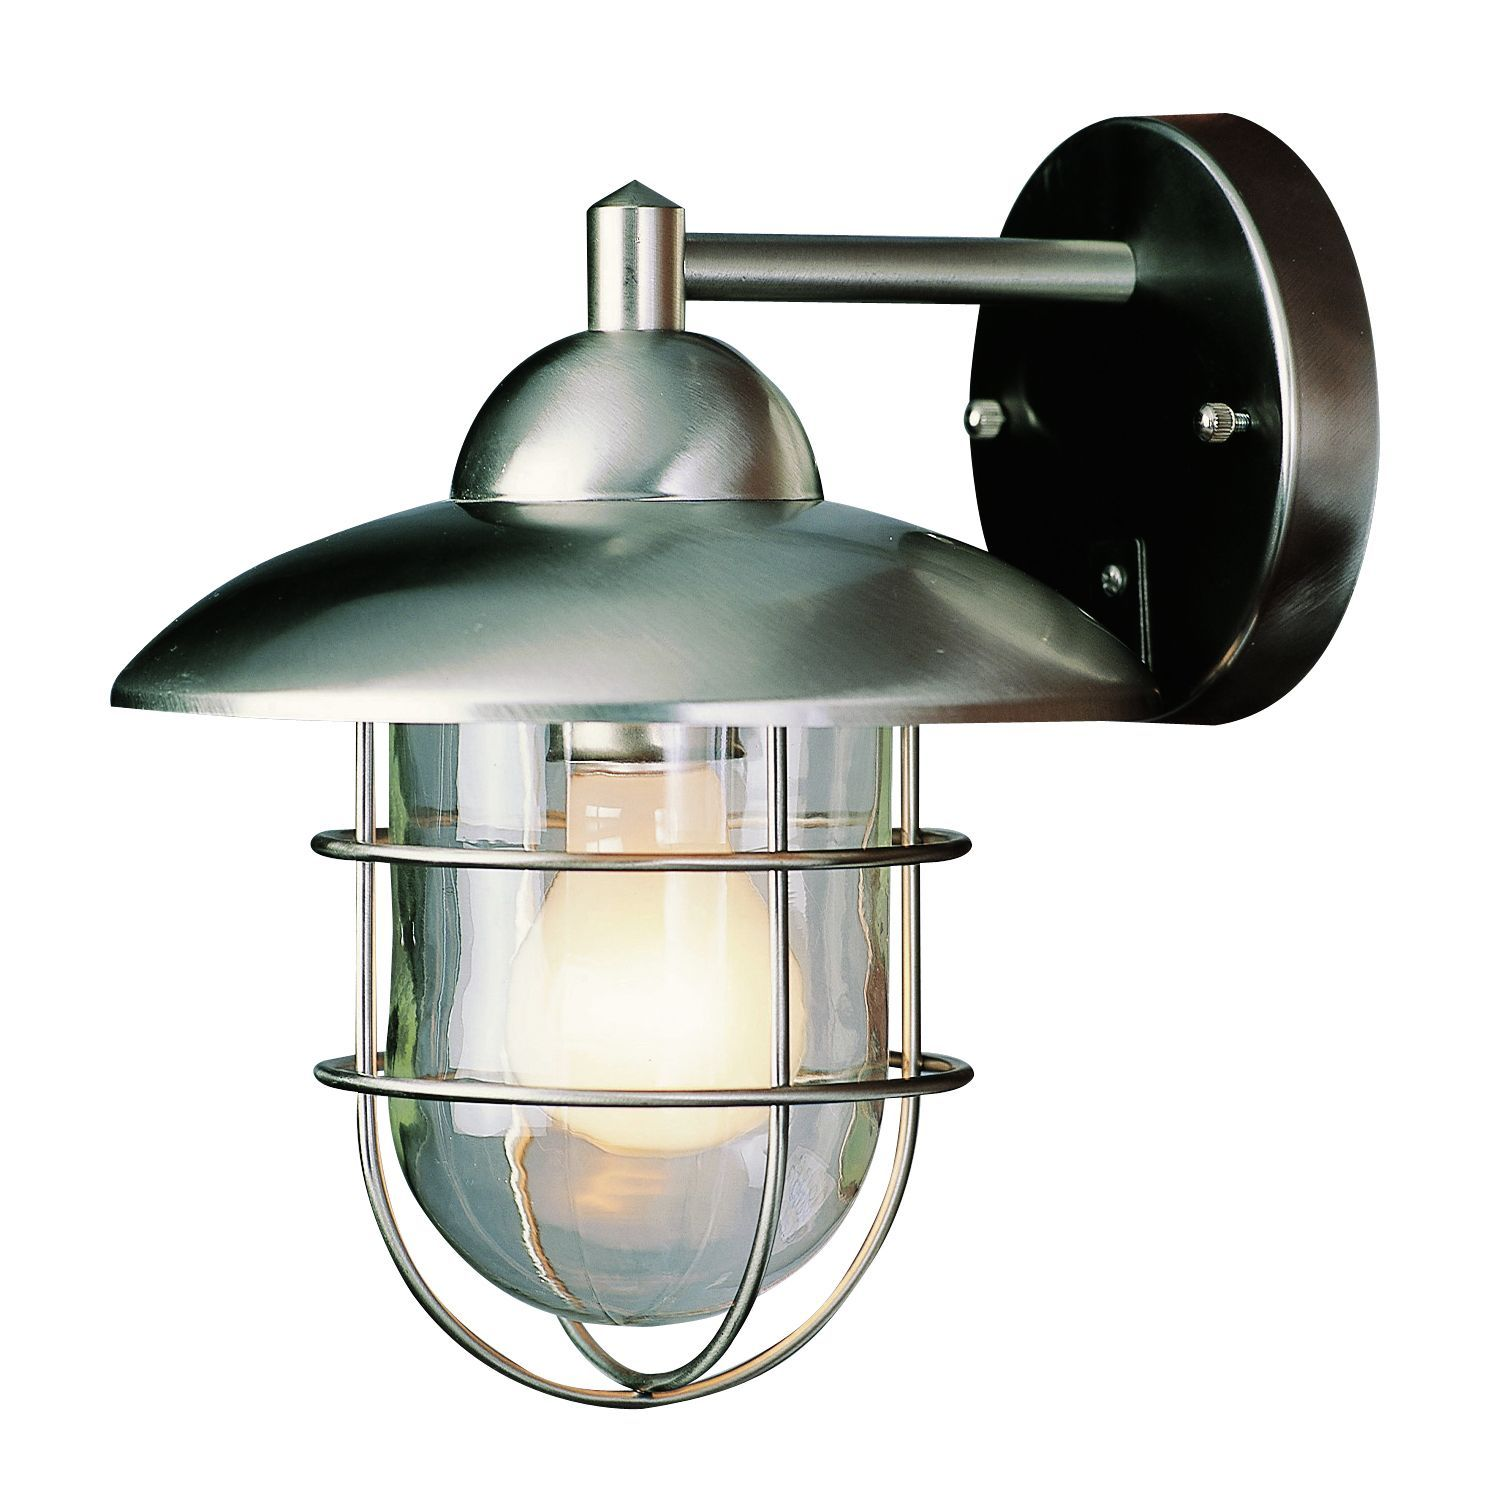 Bel air lighting inch stainless steel lantern fixture outdoor